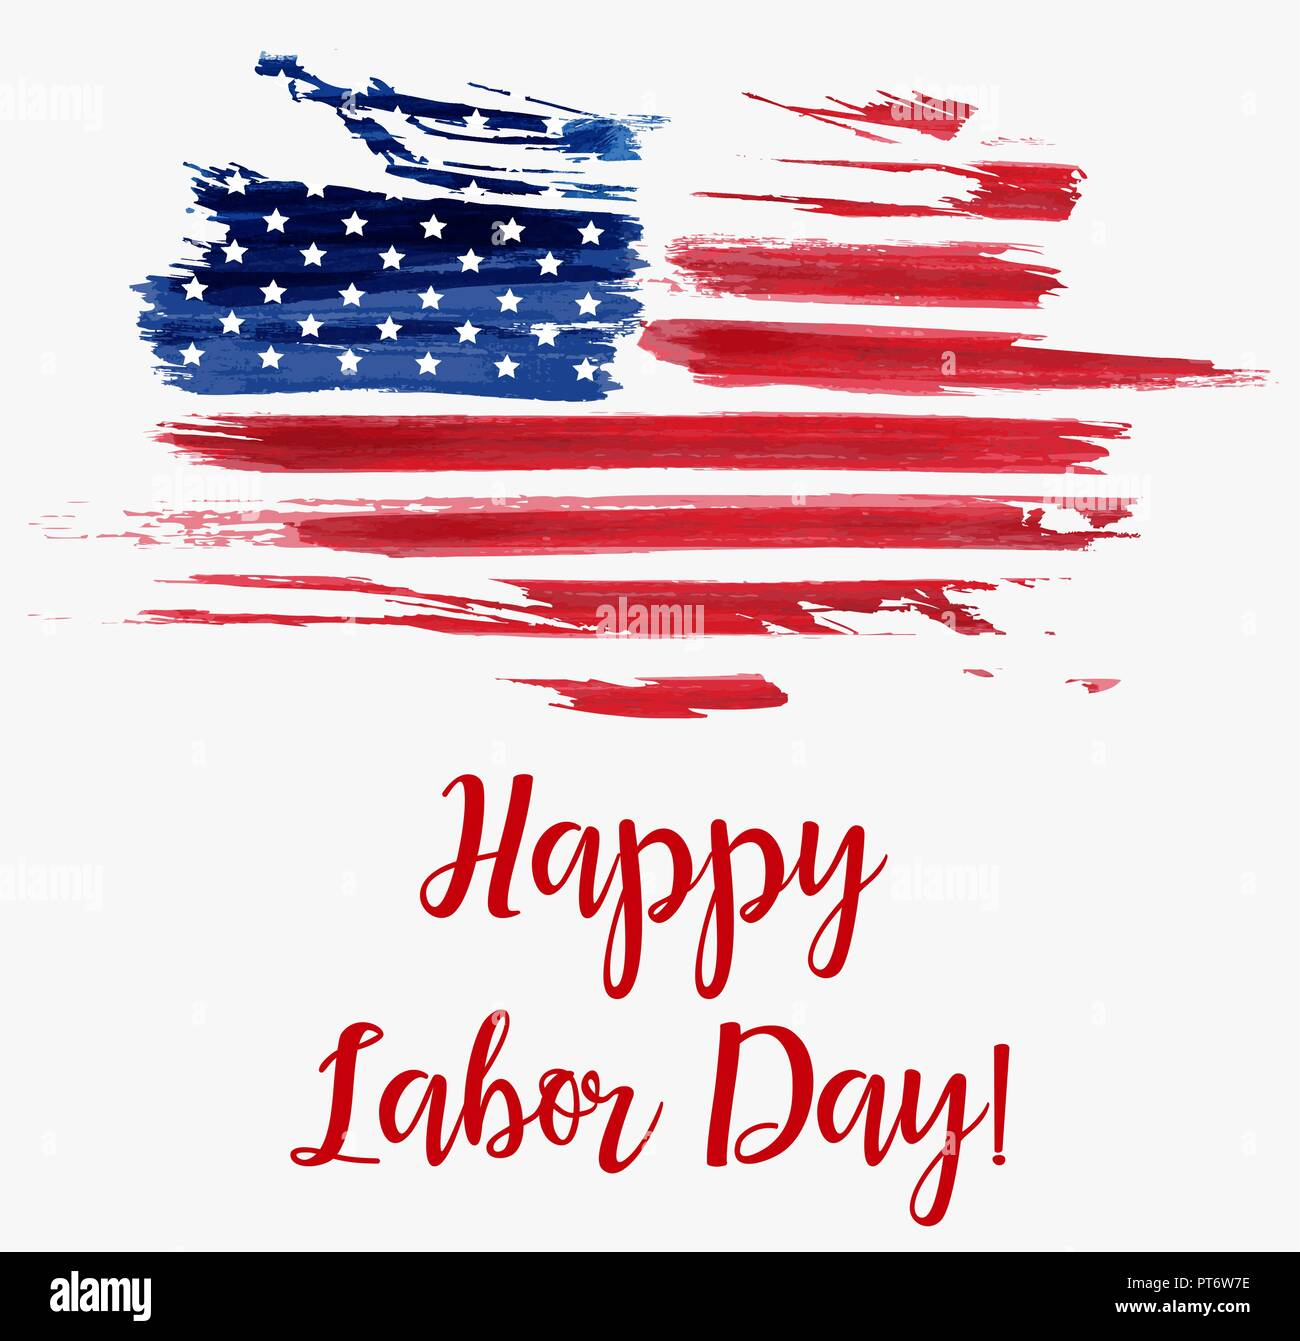 usa labor day holiday background grunge abstract flag template for